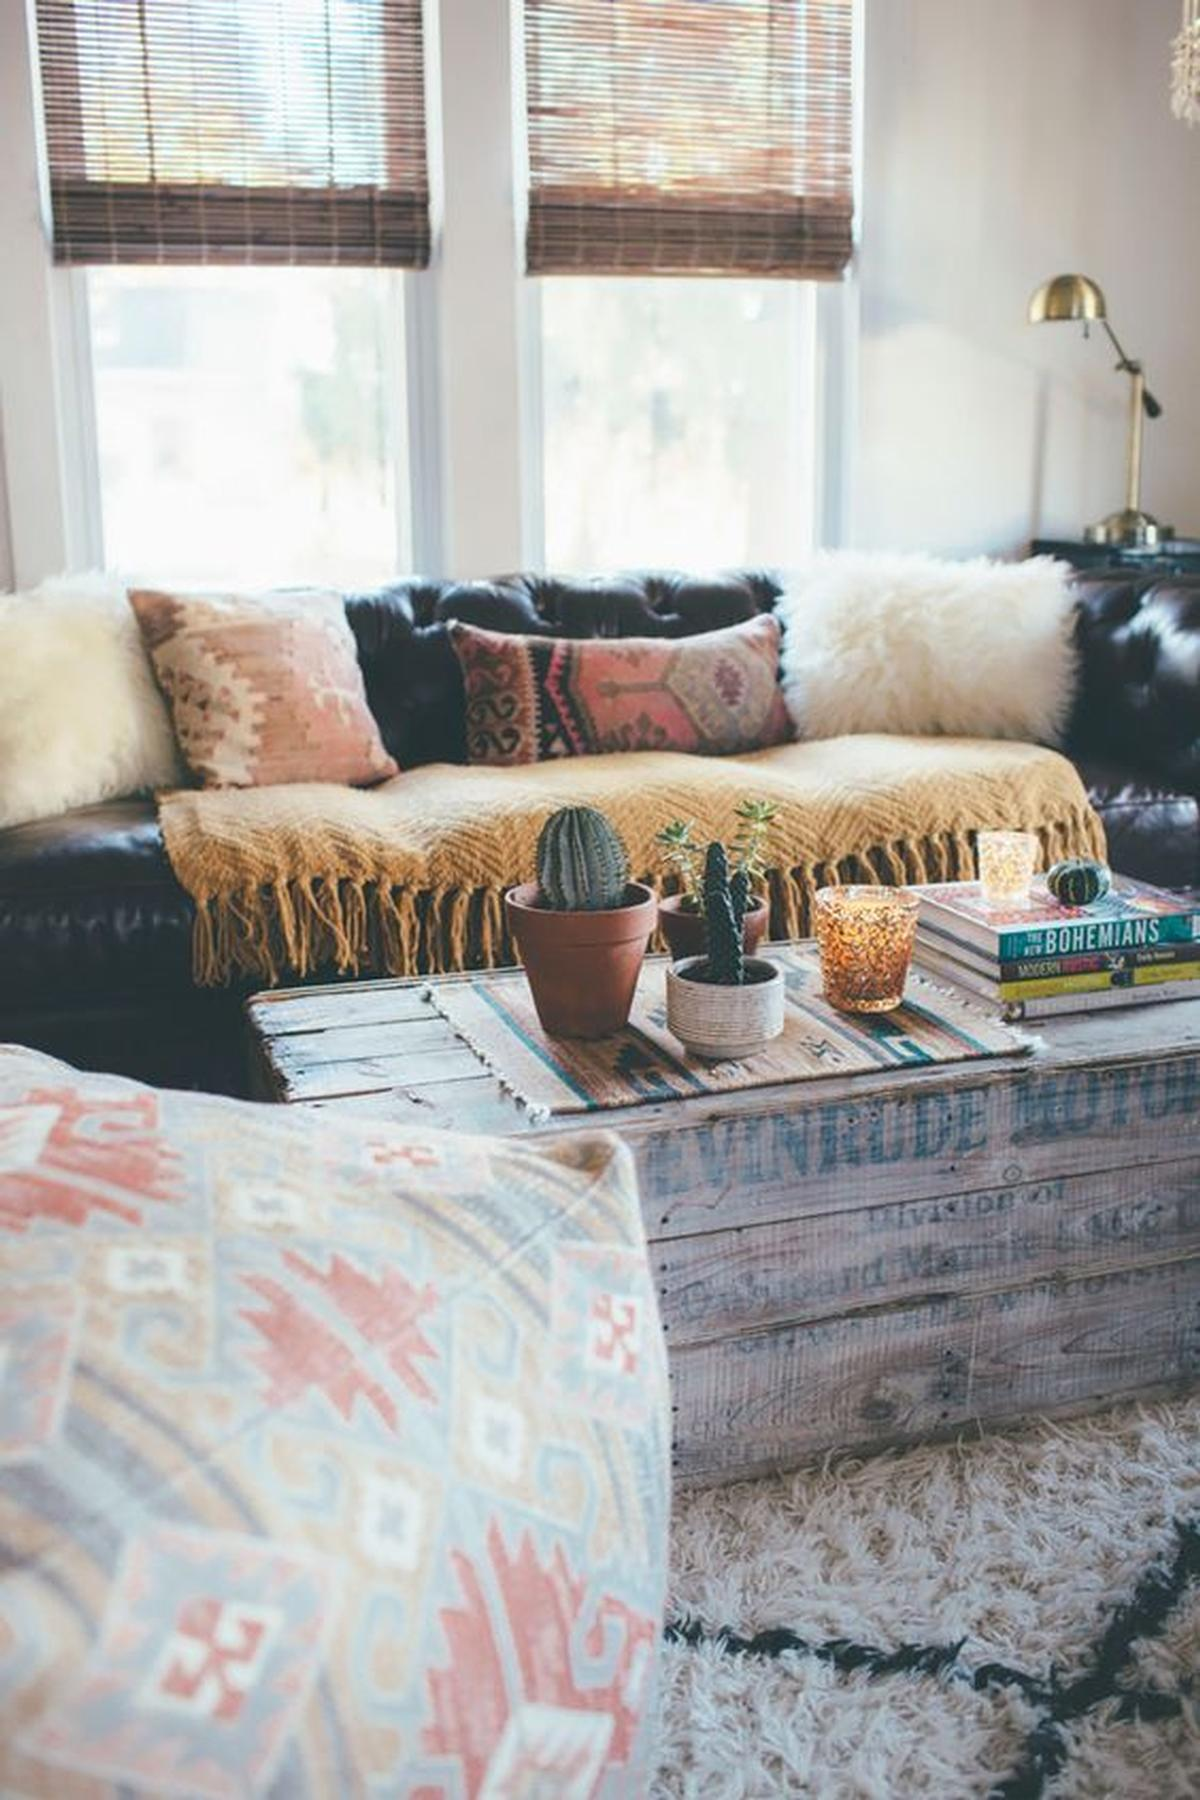 Boho style in the interior inspiration ideas – Inspirations